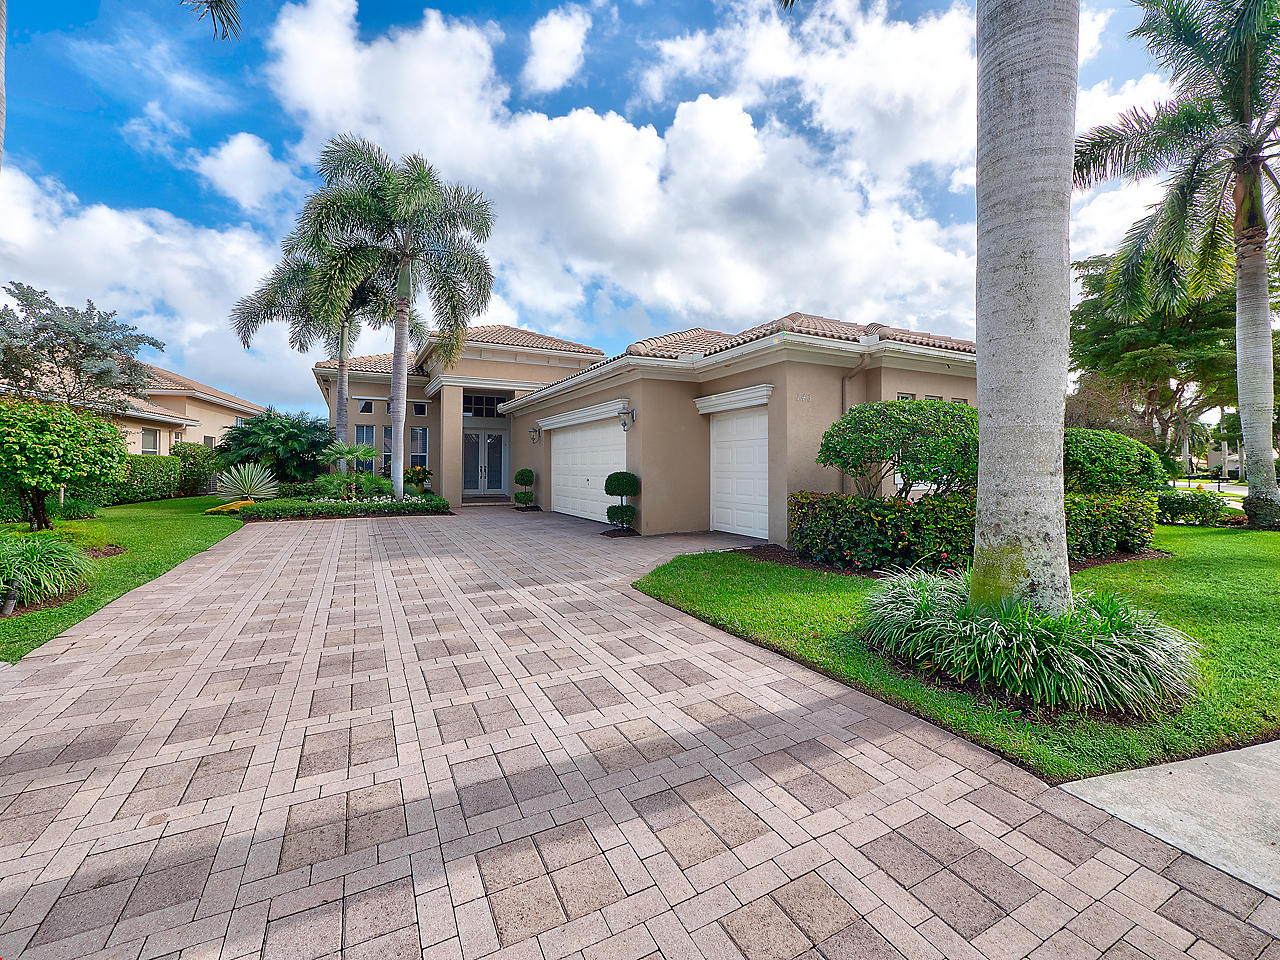 143 Orchid Cay Drive, Palm Beach Gardens, Florida 33418, 3 Bedrooms Bedrooms, ,3 BathroomsBathrooms,A,Single family,Orchid Cay,RX-10584194